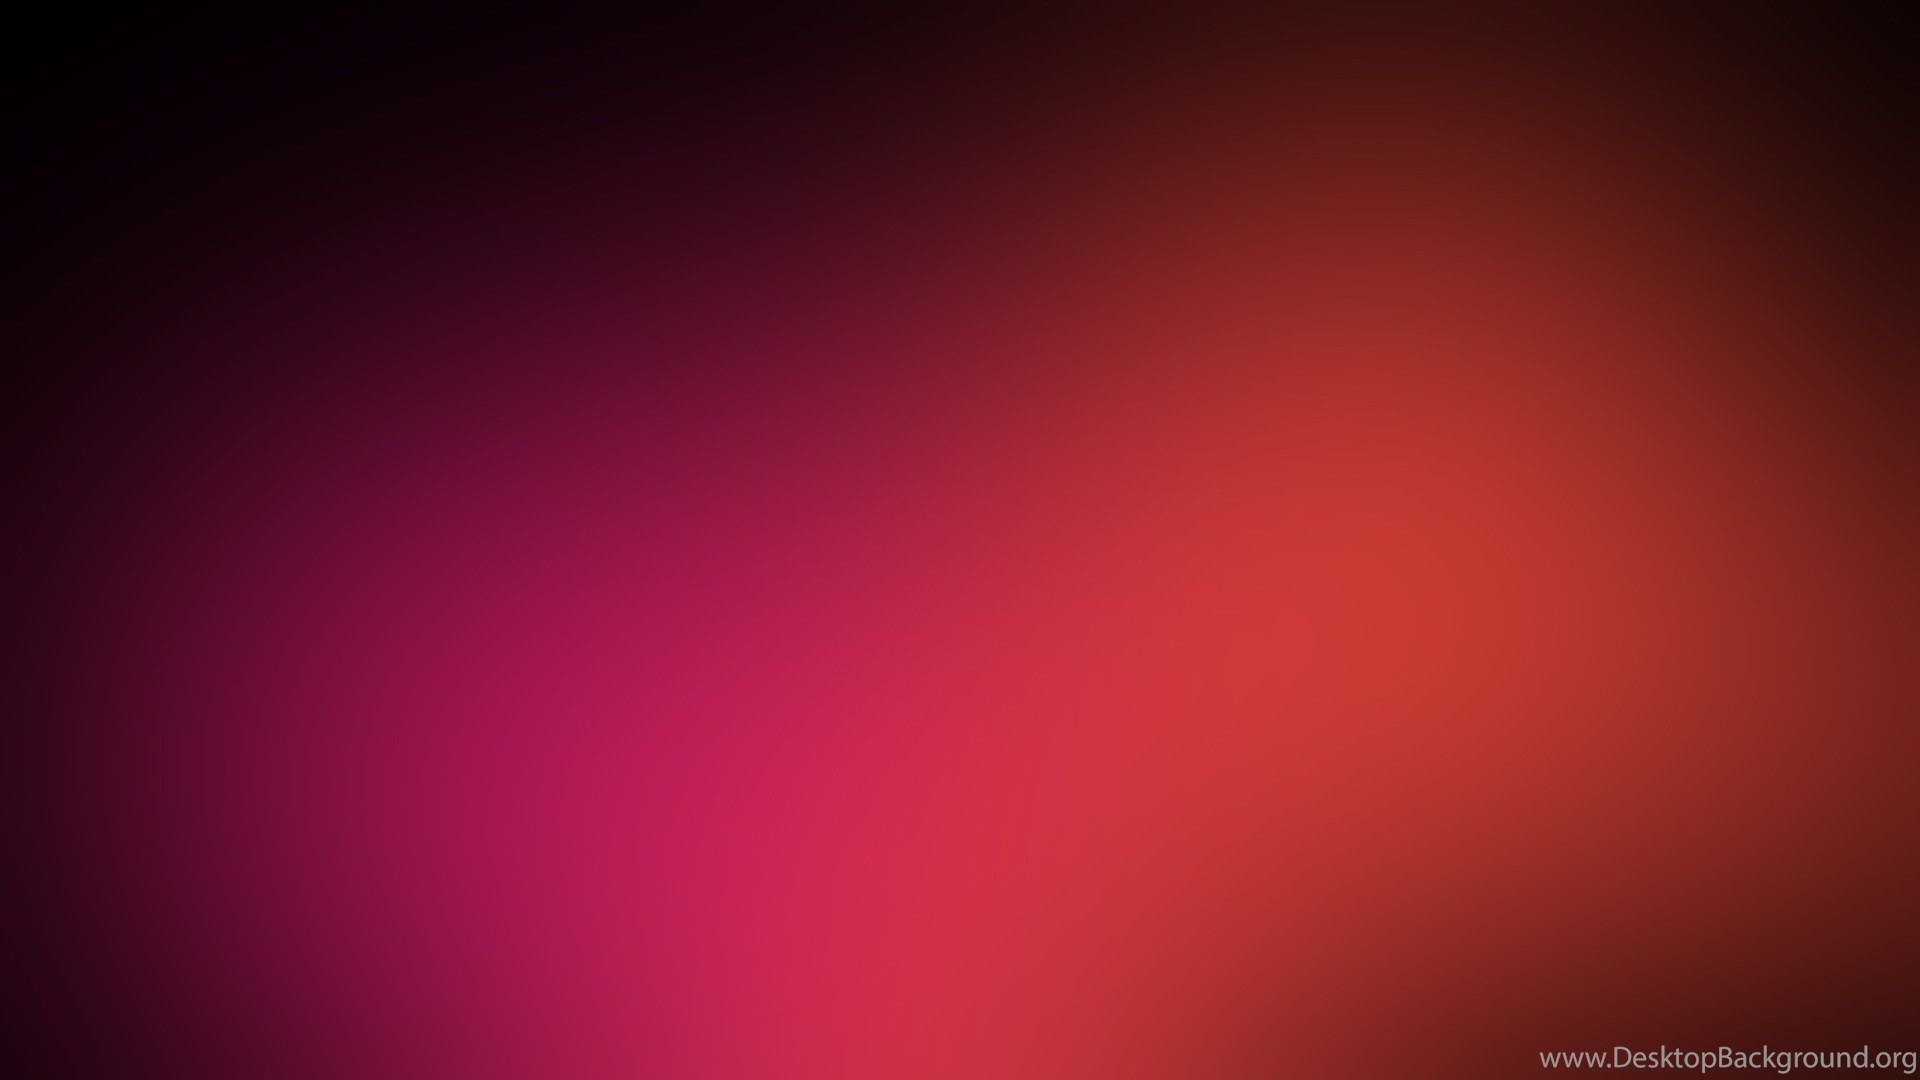 Red, Pink, Patterns, Textures, Gaussian Blur, Backgrounds